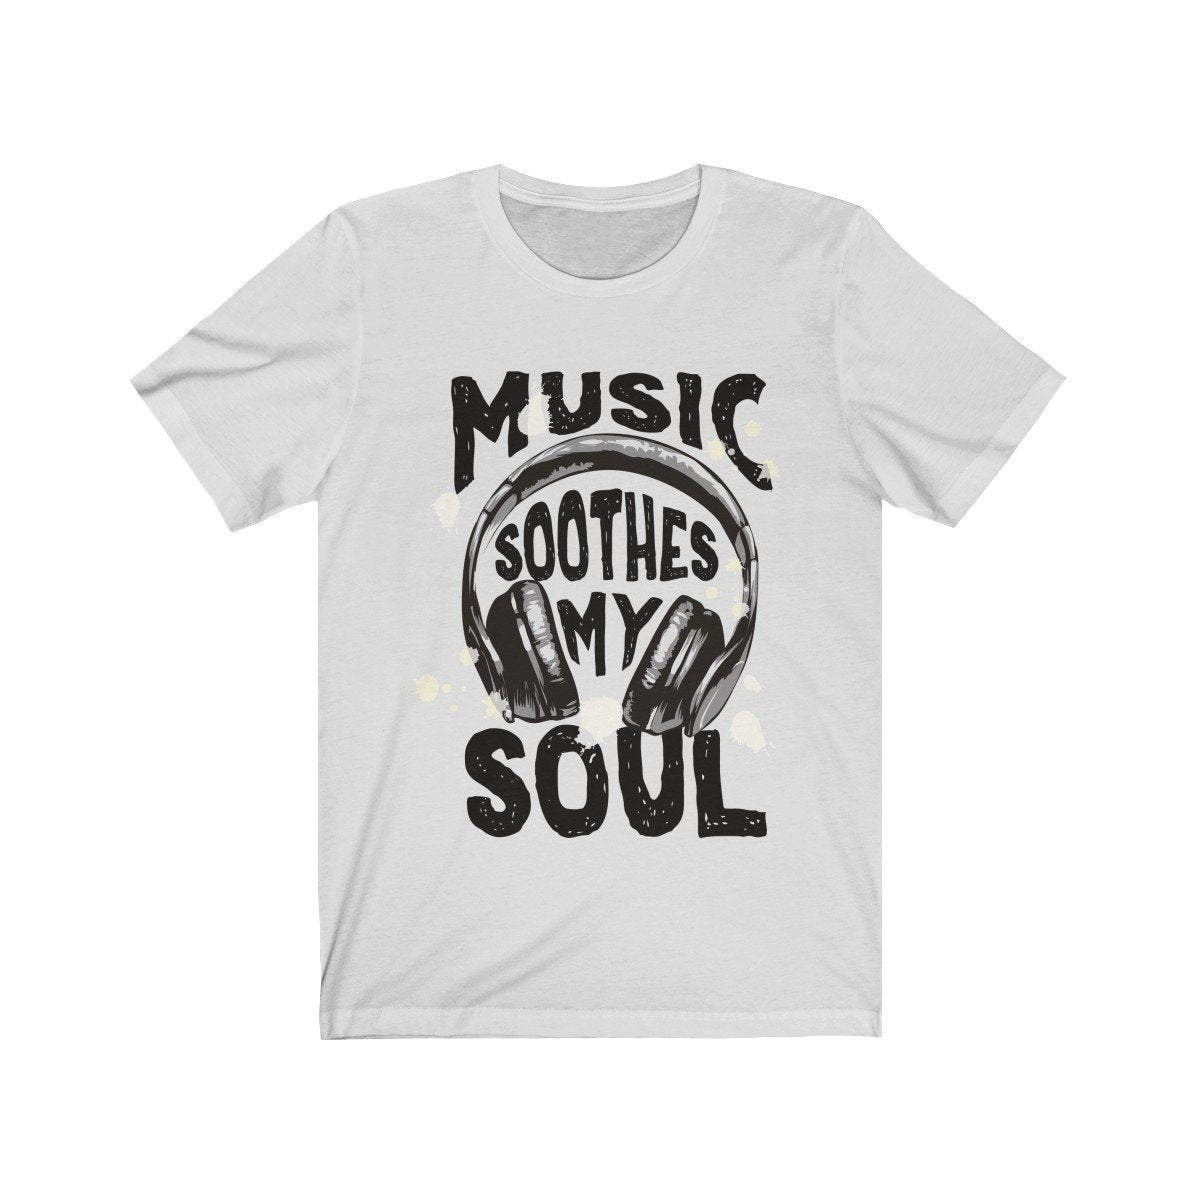 Music Soothes my soul Headphone Short Sleeve Tee - Null Audio